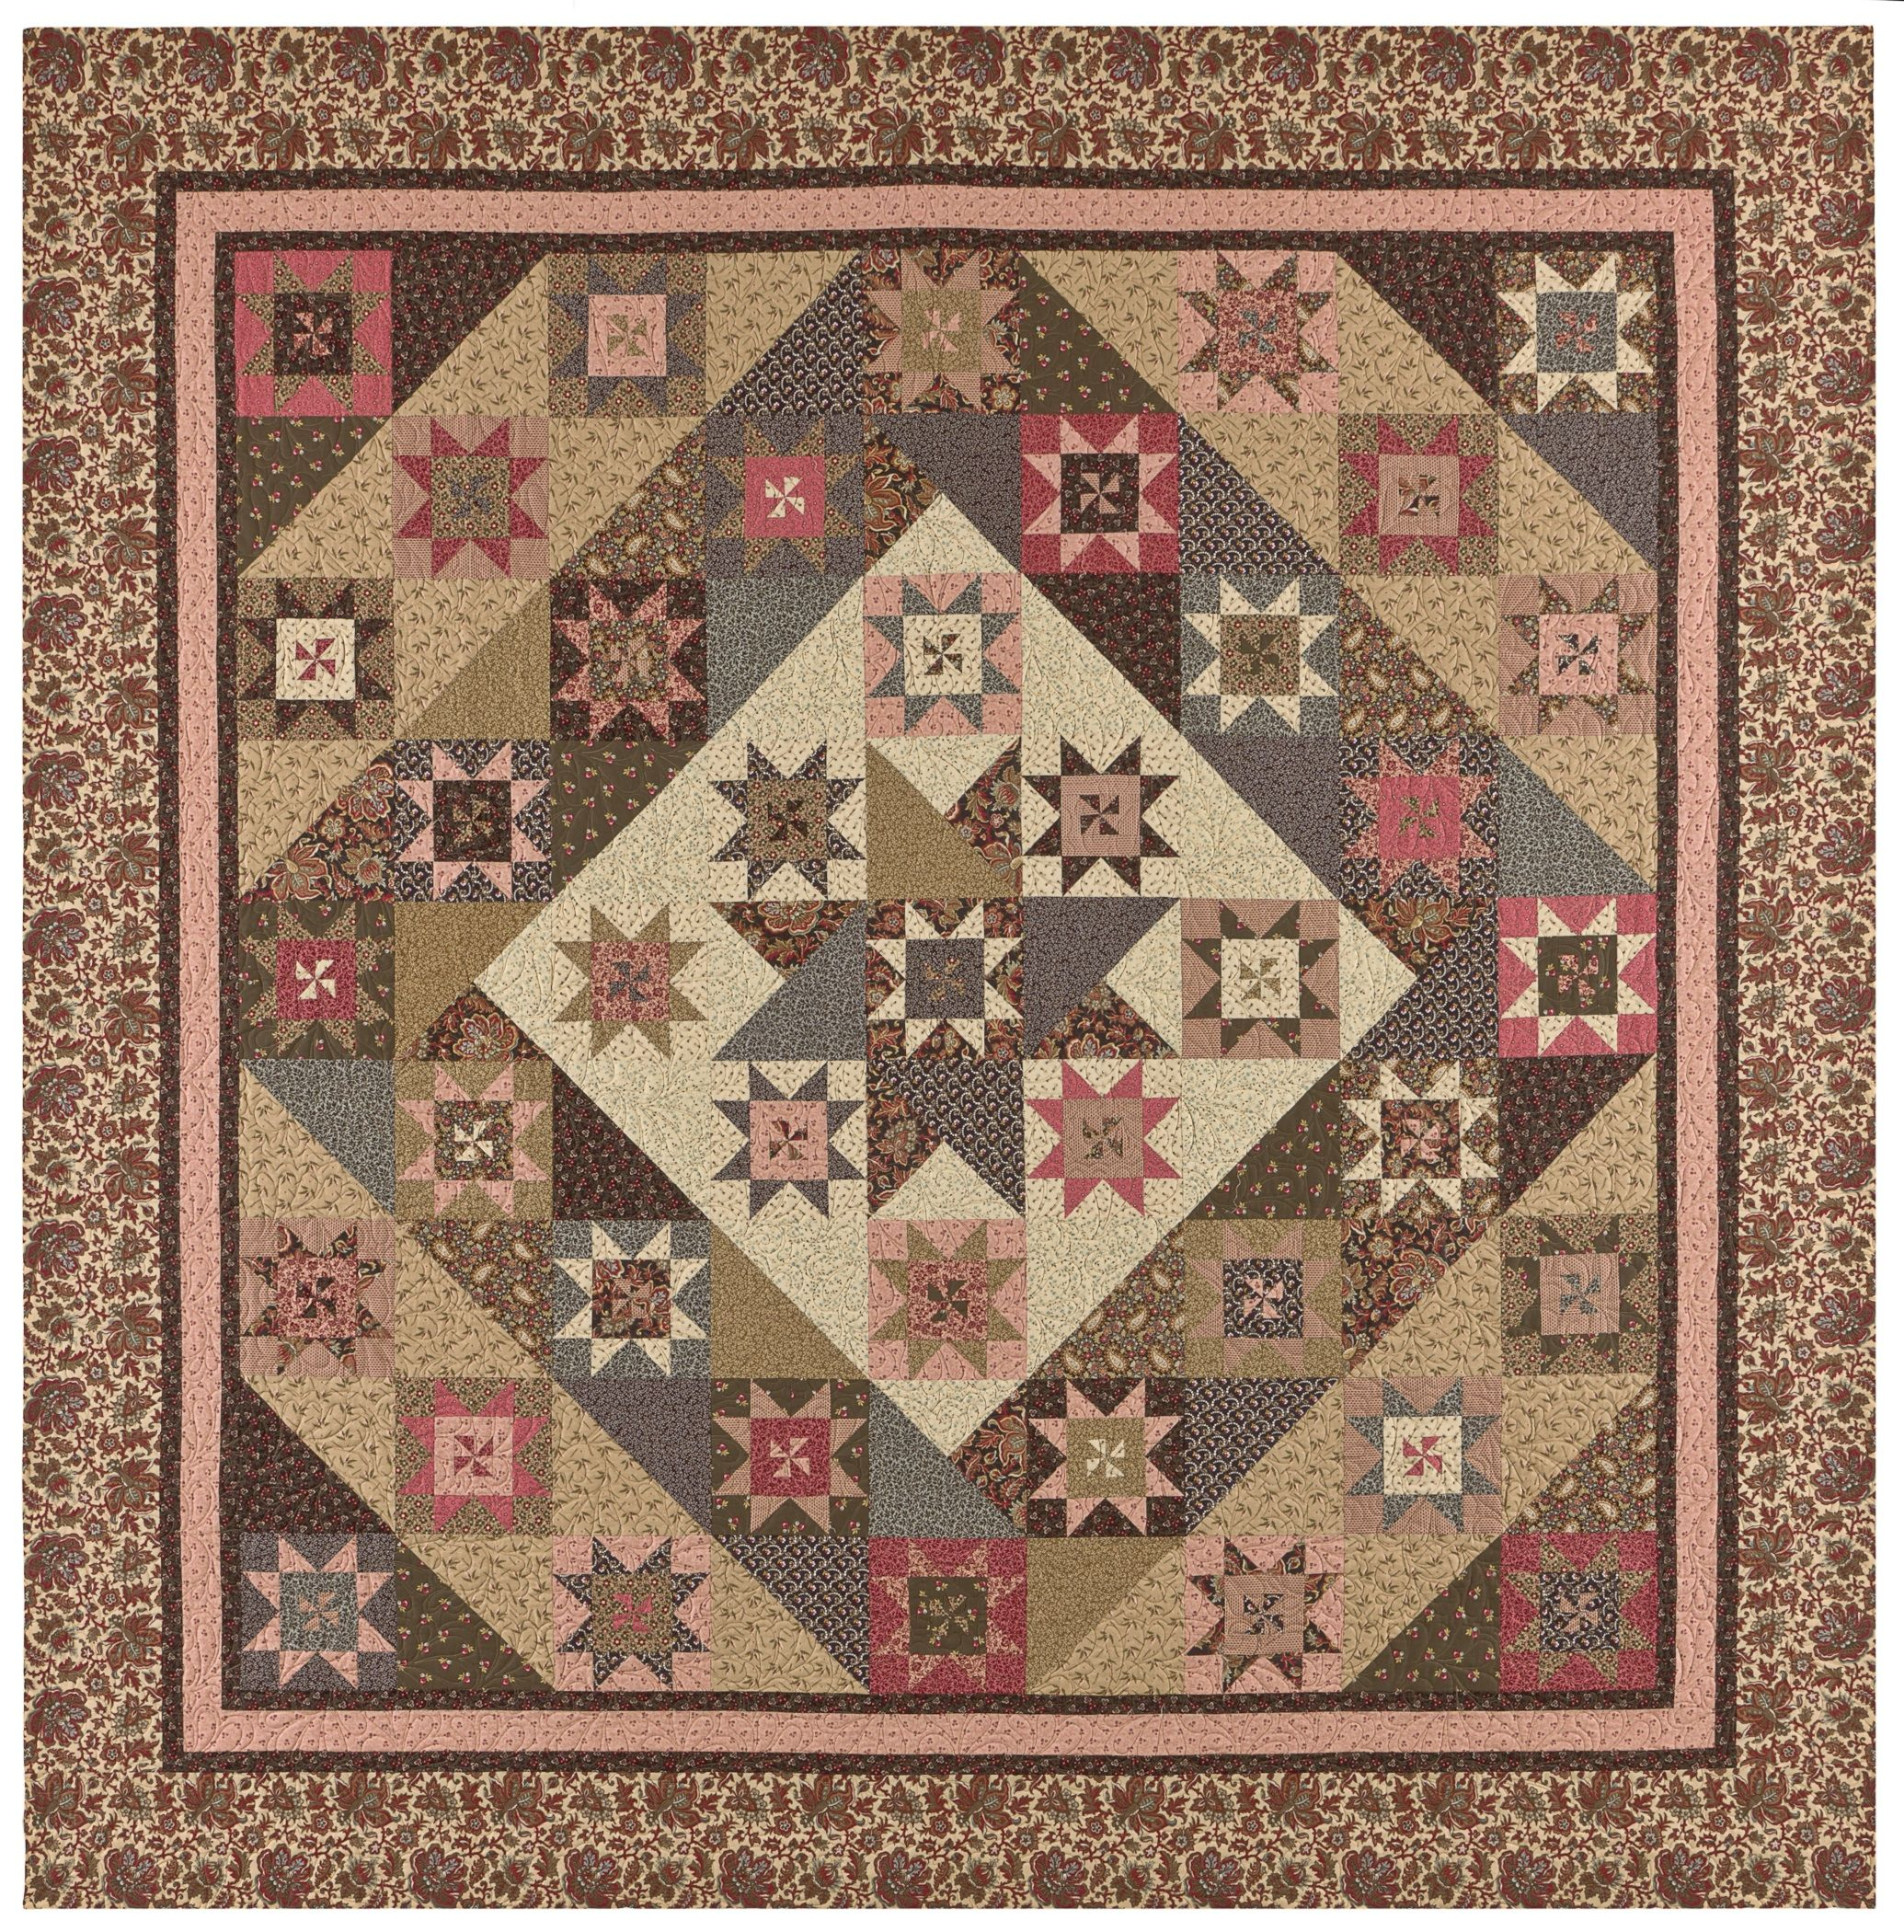 1800's Civil War Era Reproduction Fabric Online Quilt Store ... : online quilt store - Adamdwight.com